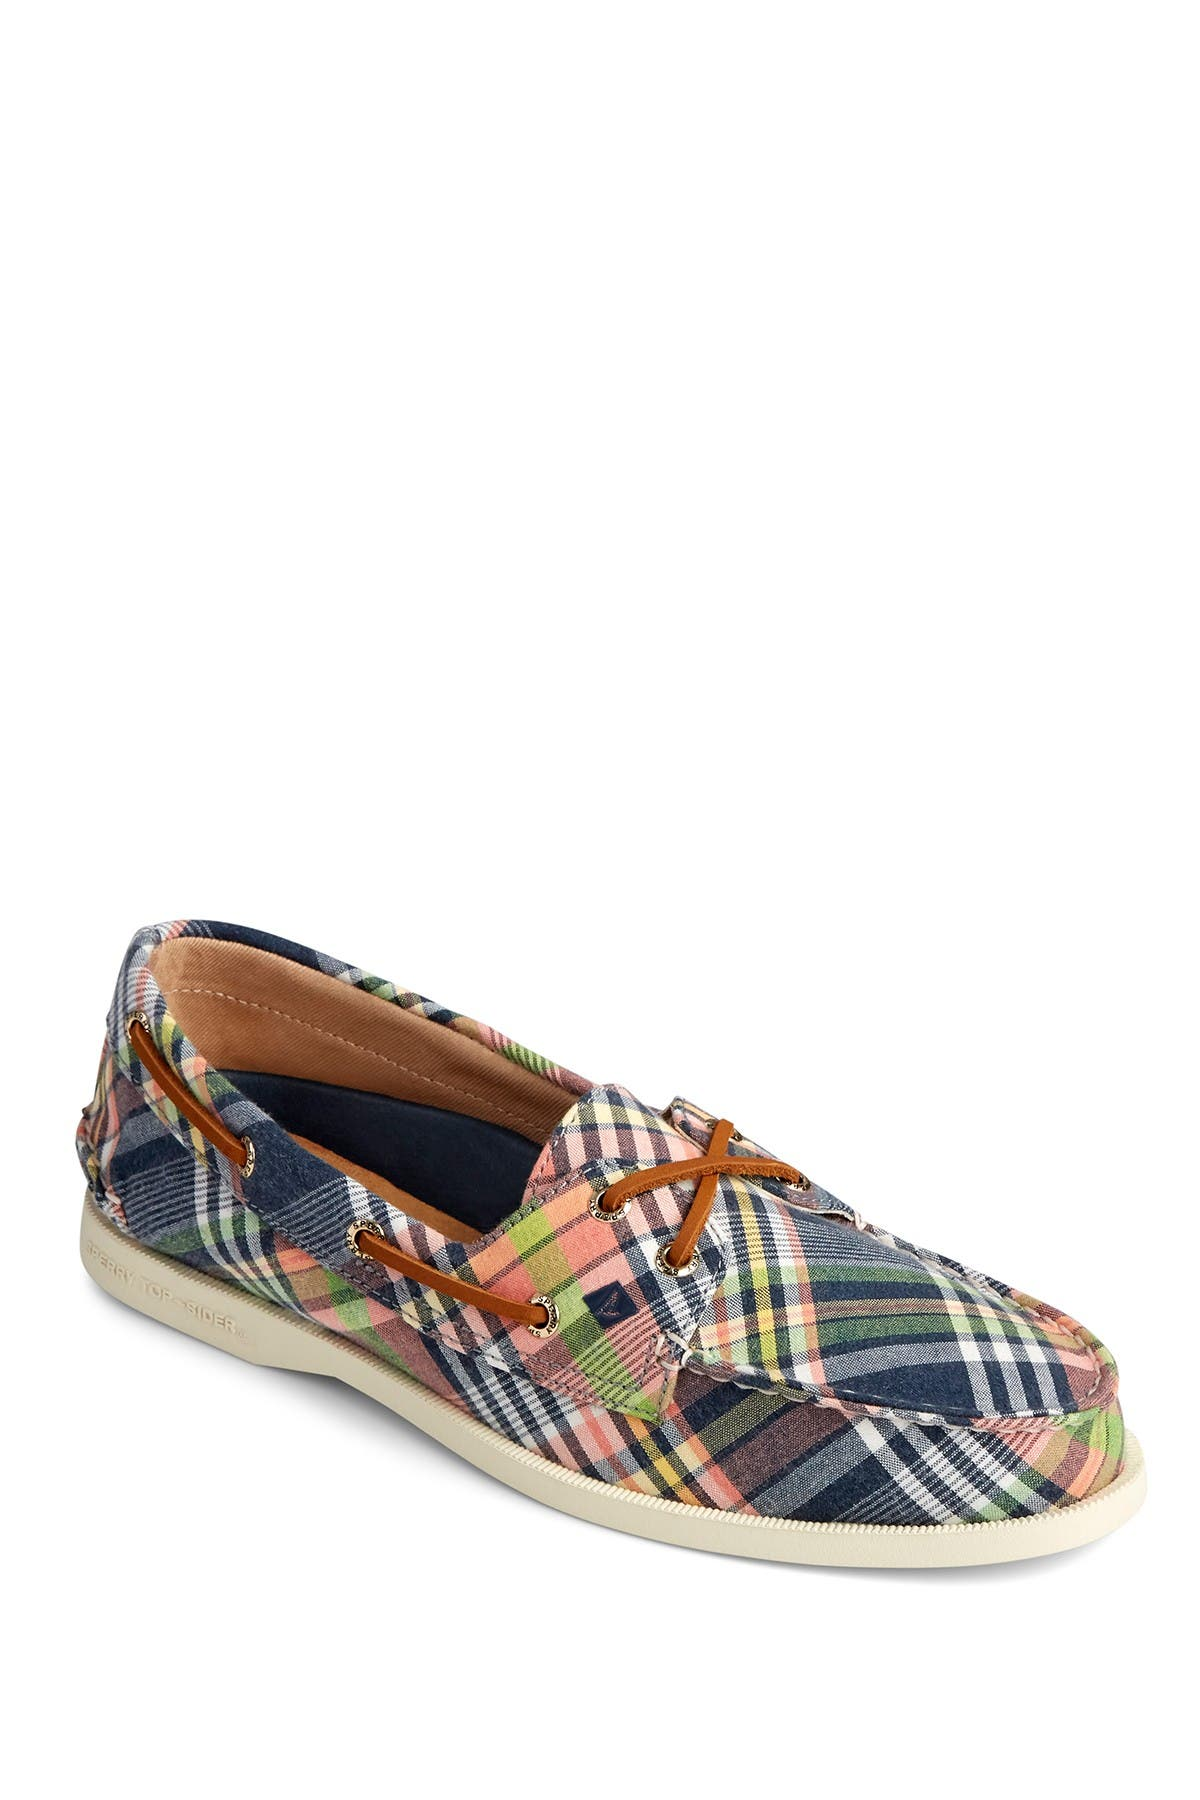 Image of Sperry A/O 2-Eye Boat Shoe